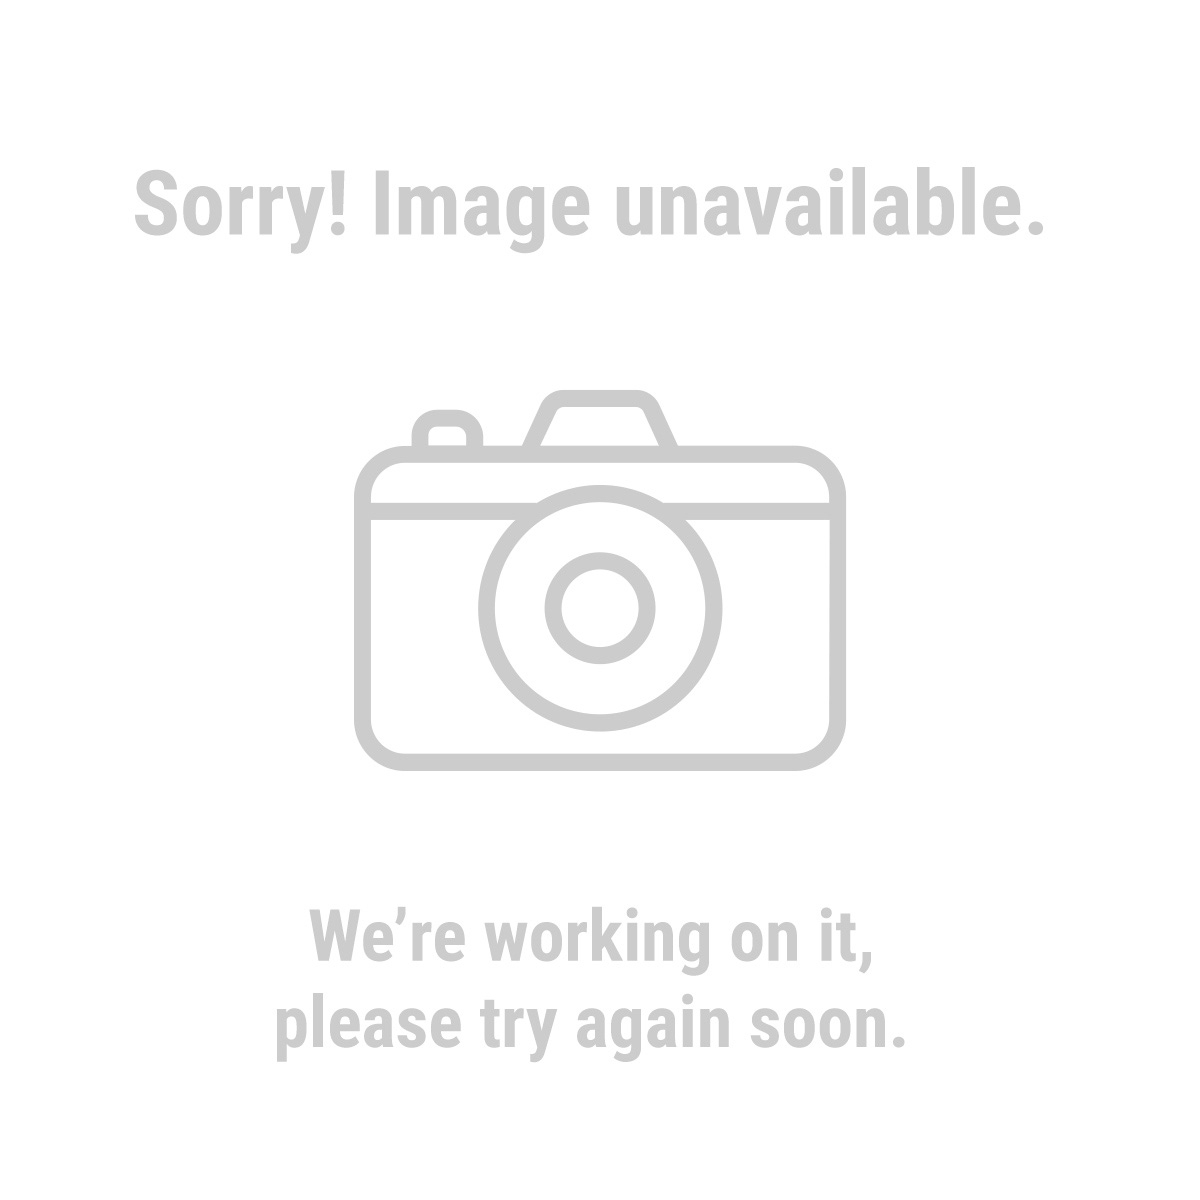 Central Pneumatic 67696 1.5 Horsepower, 6 Gallon, 150 PSI Professional Oilless Air Compressor